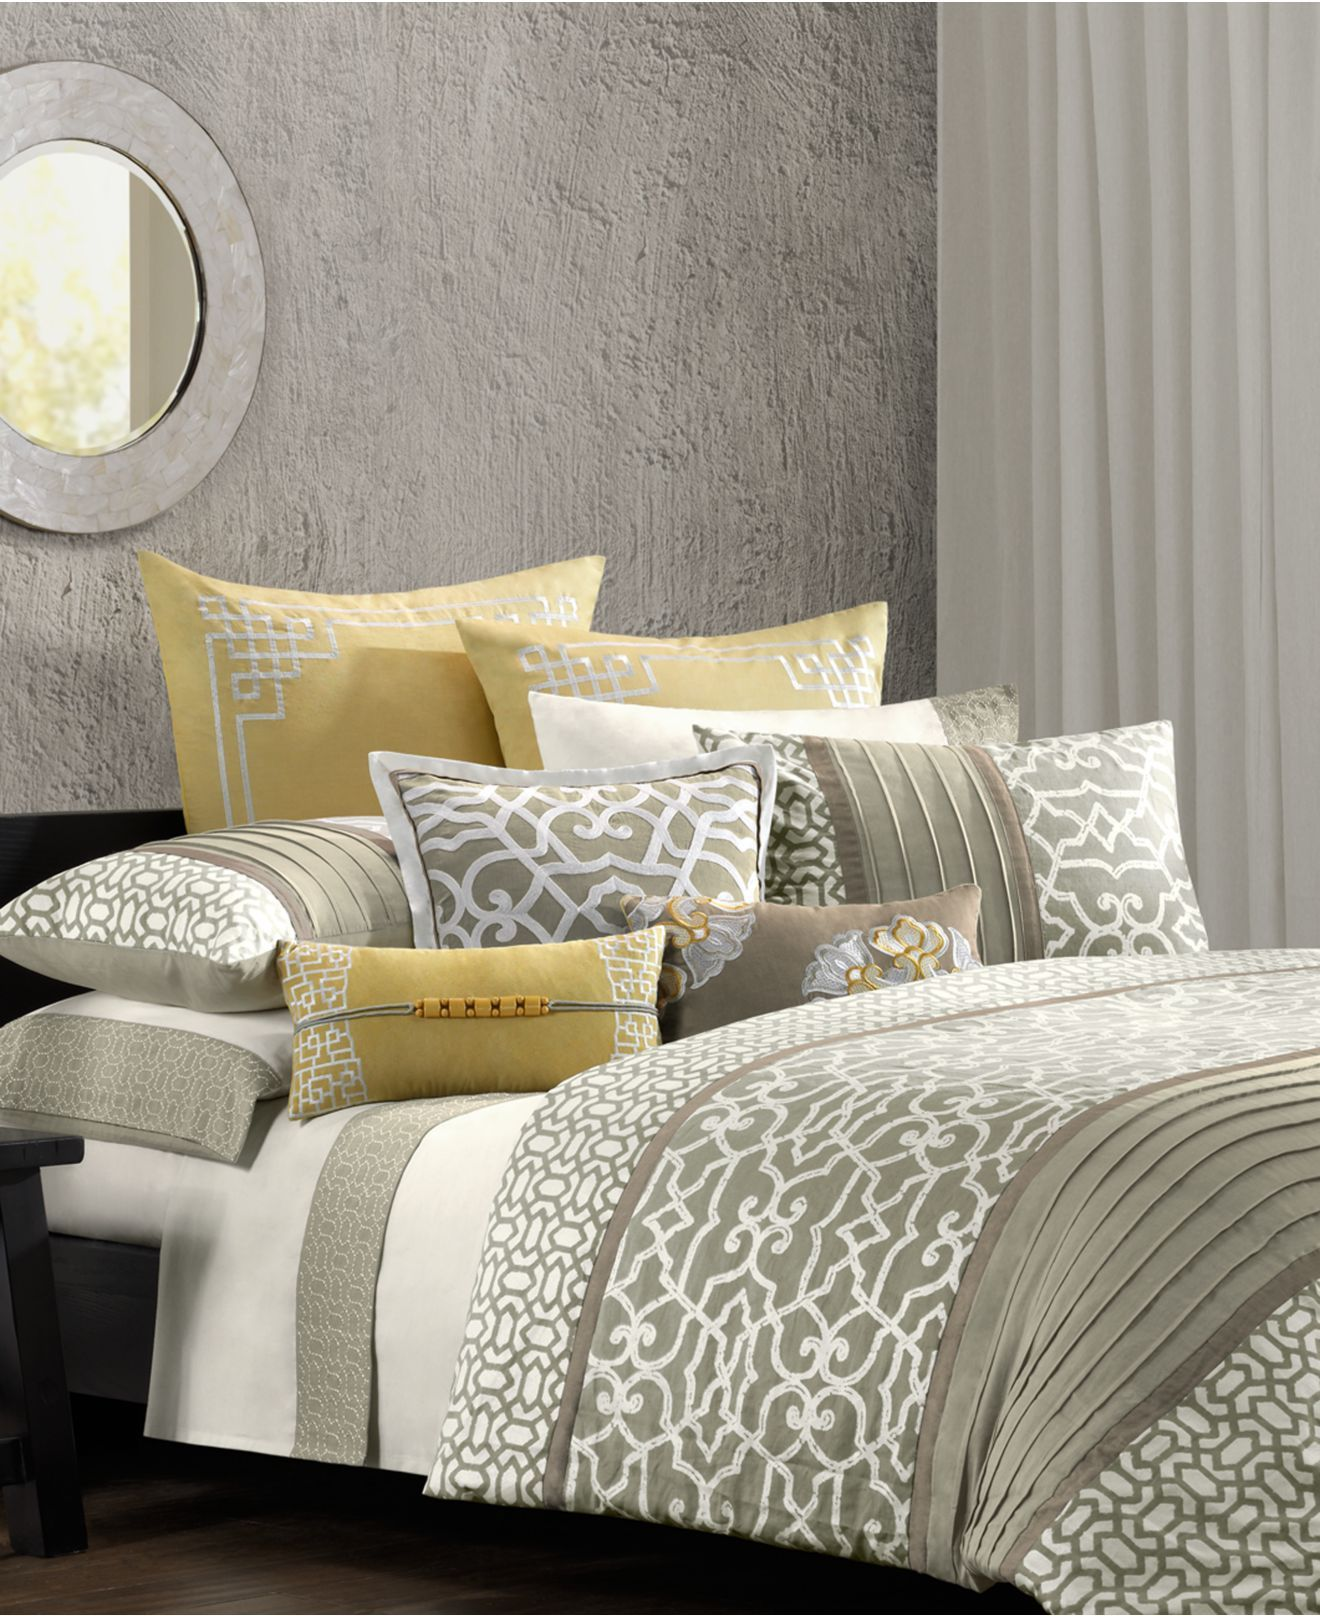 n natori bedding, fretwork comforter sets - bedding collections